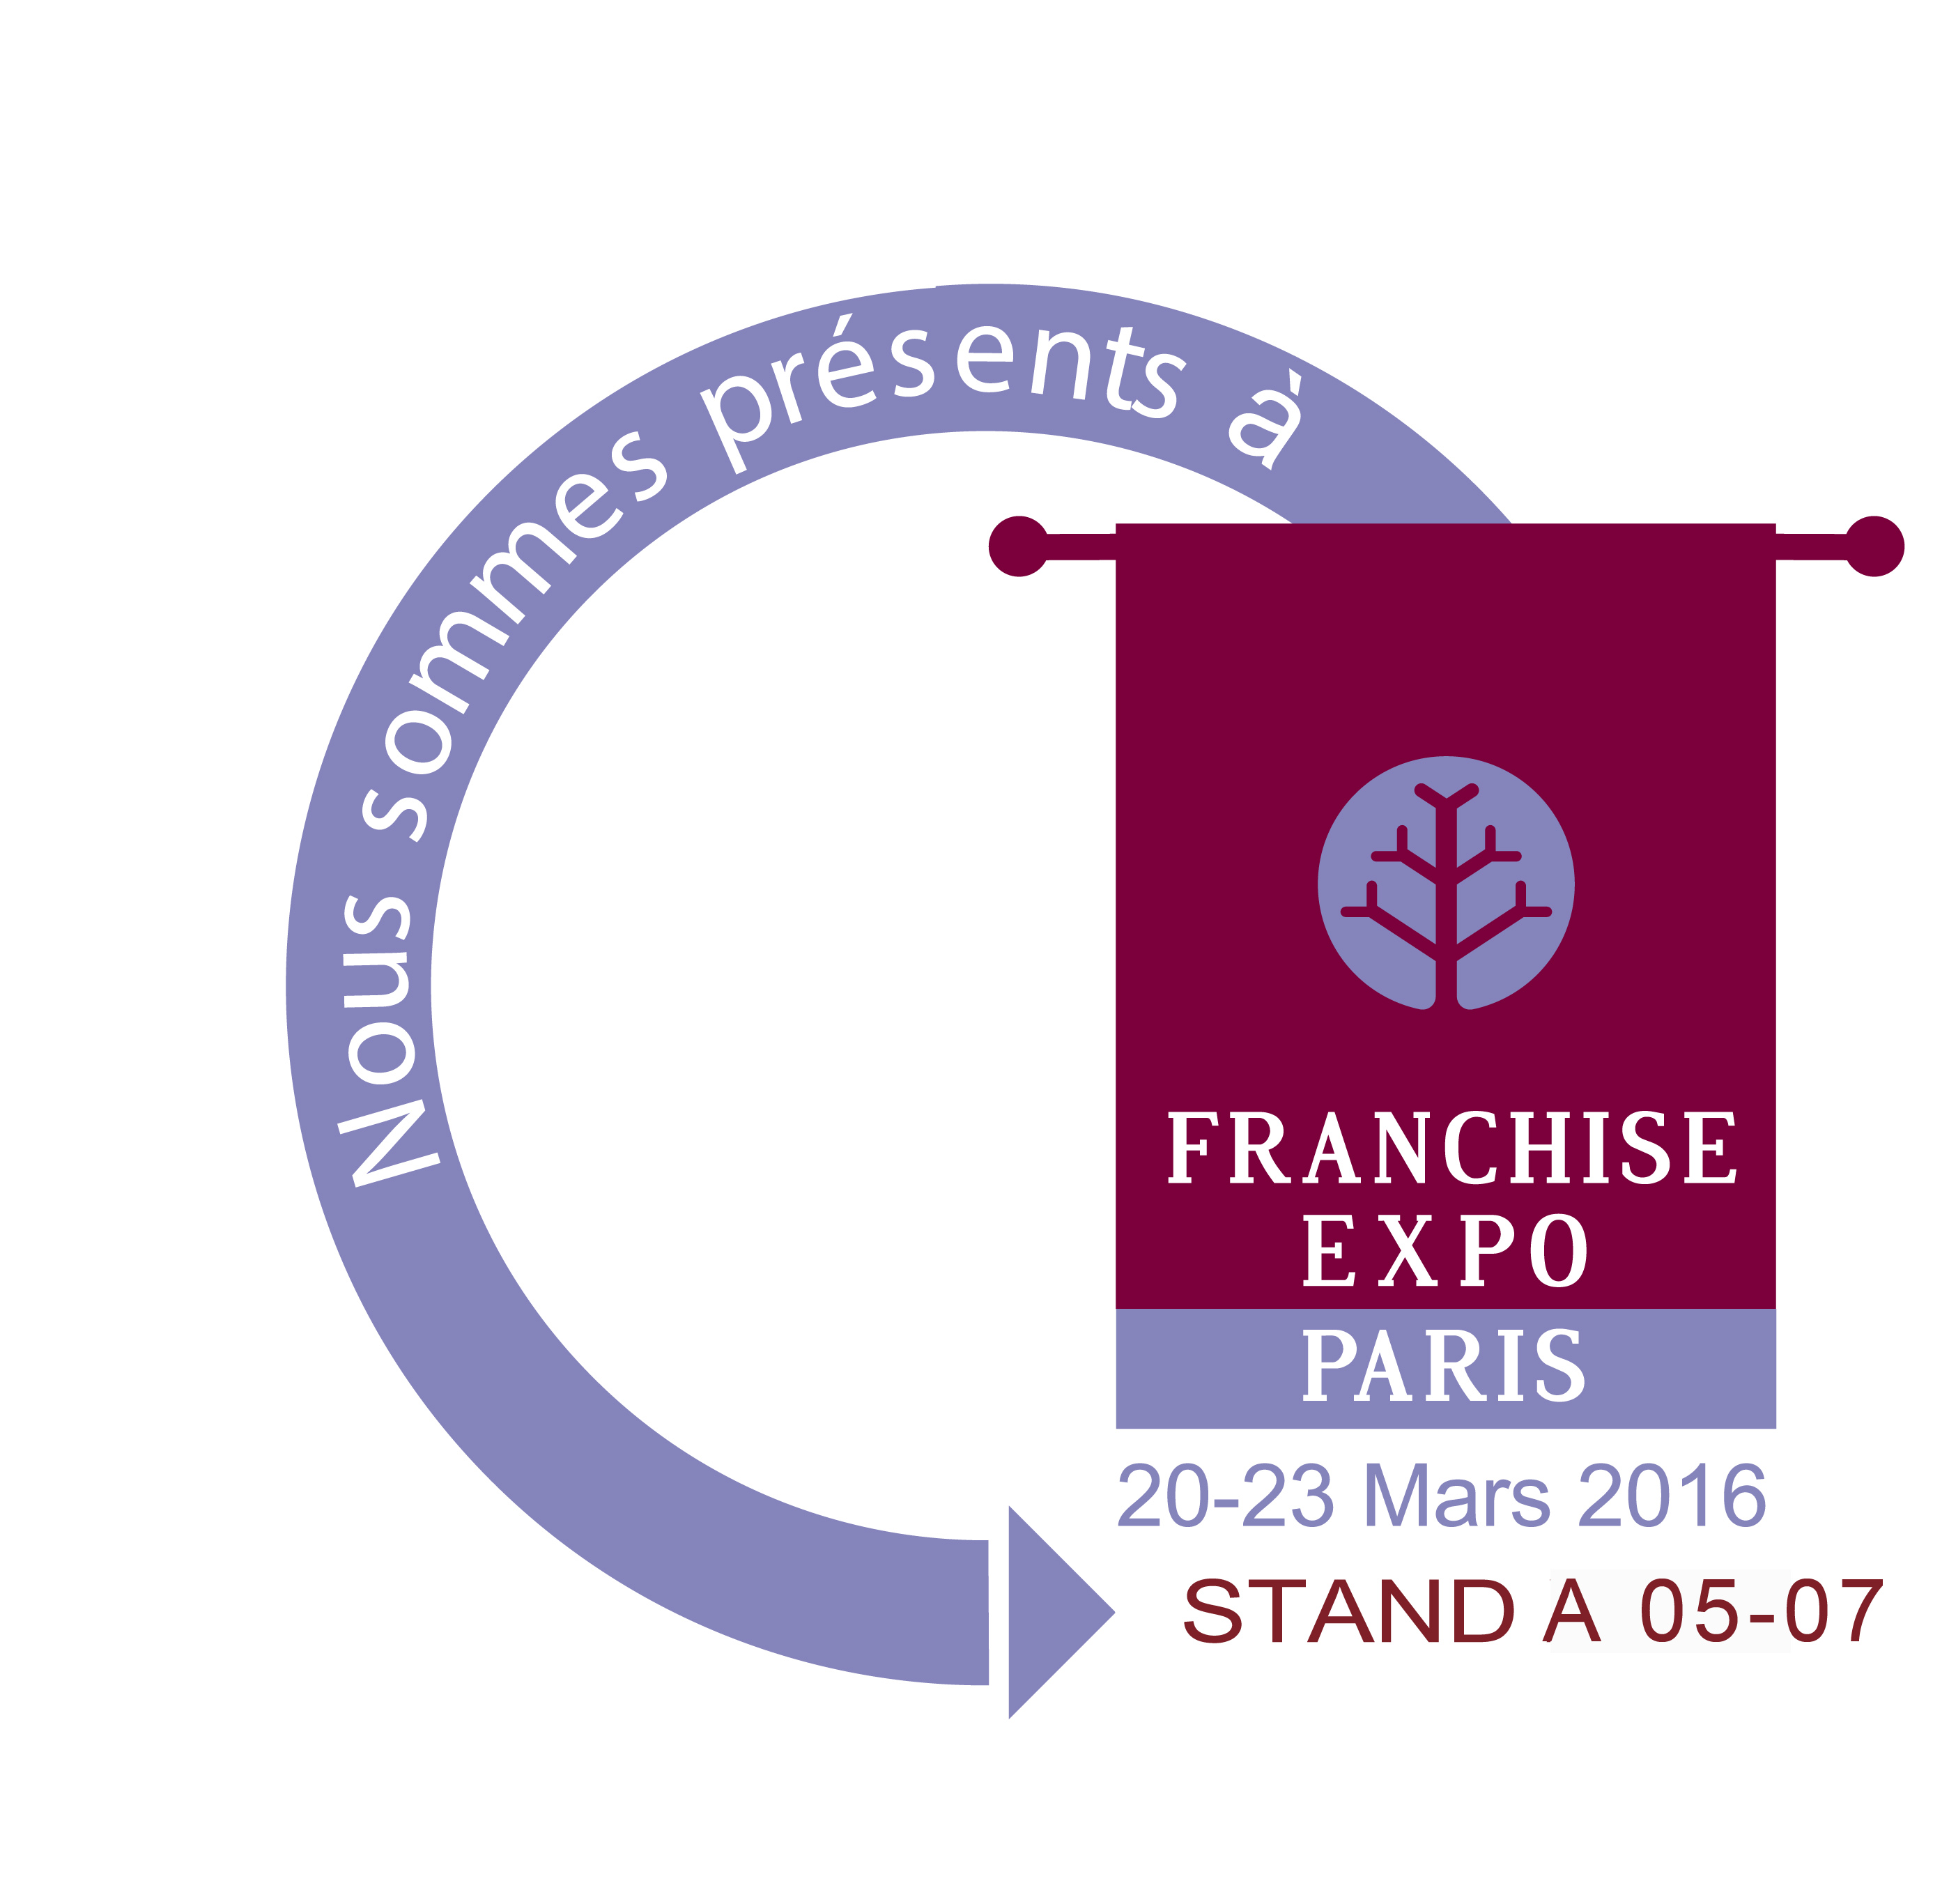 Provence Promotion at Franchise Expo 2016 alongside the Marseille Provence CCI